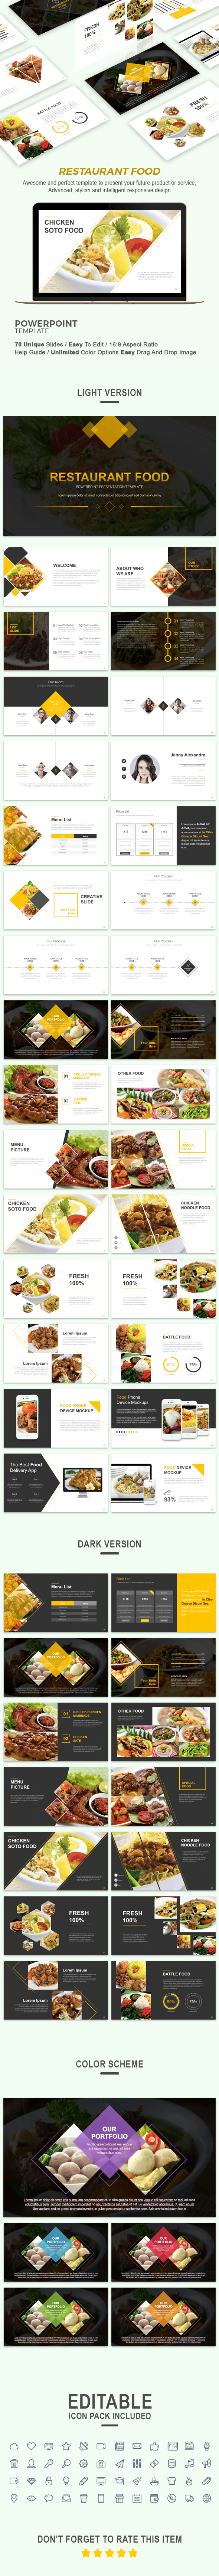 Restaurant Food Presentation Template By RRgraph GraphicRiver - Best of powerpoint food themes scheme